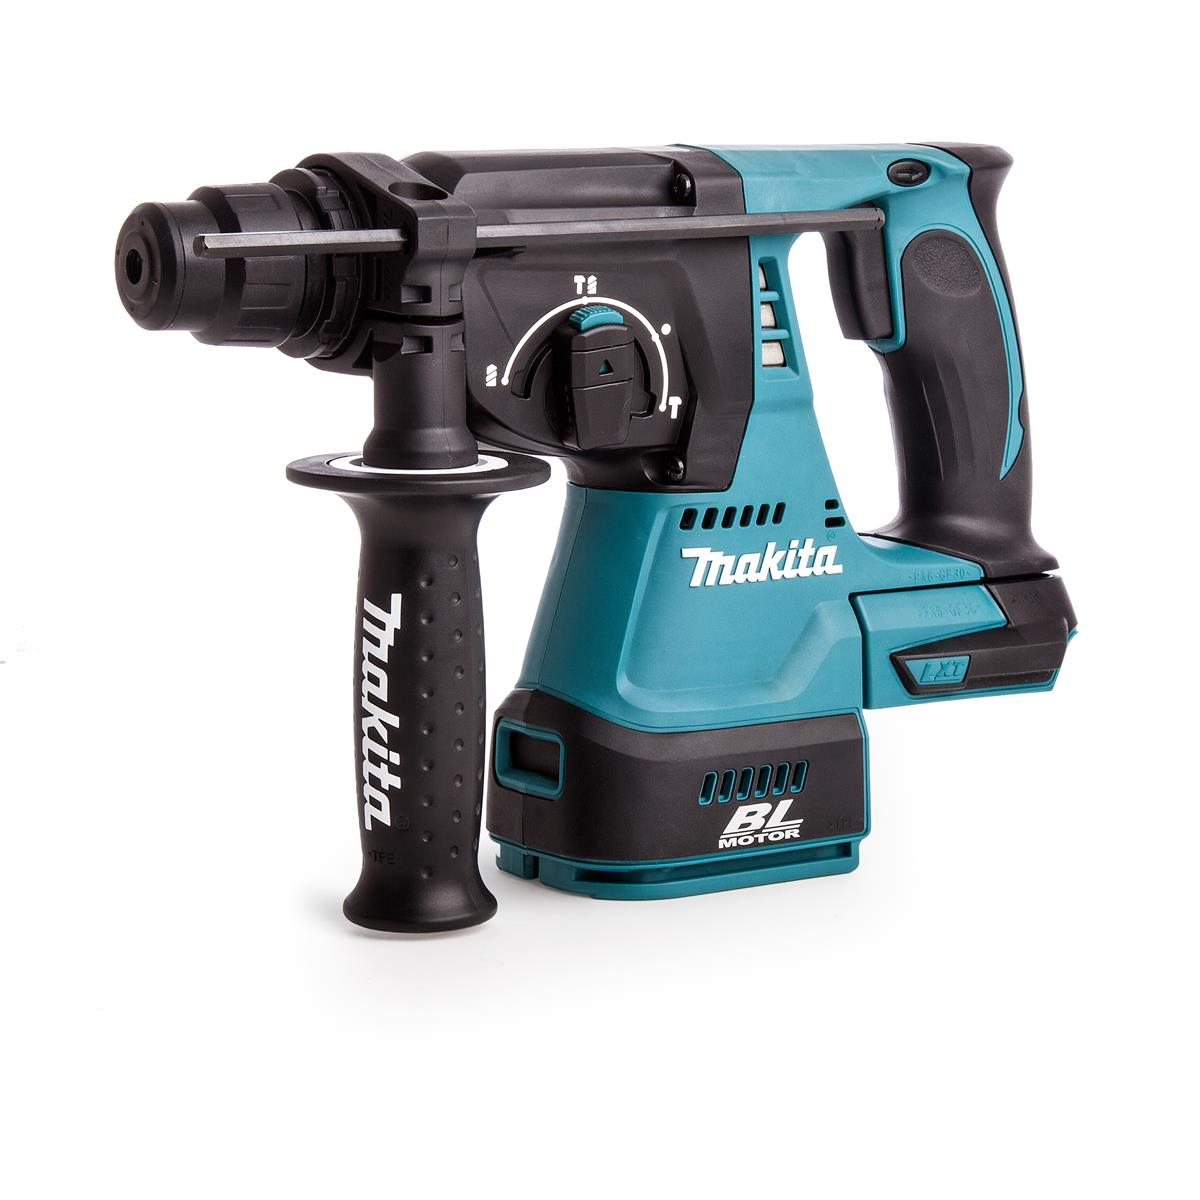 Makita 18V Cordless Brushless Combination Rotary Hammer (Solo)